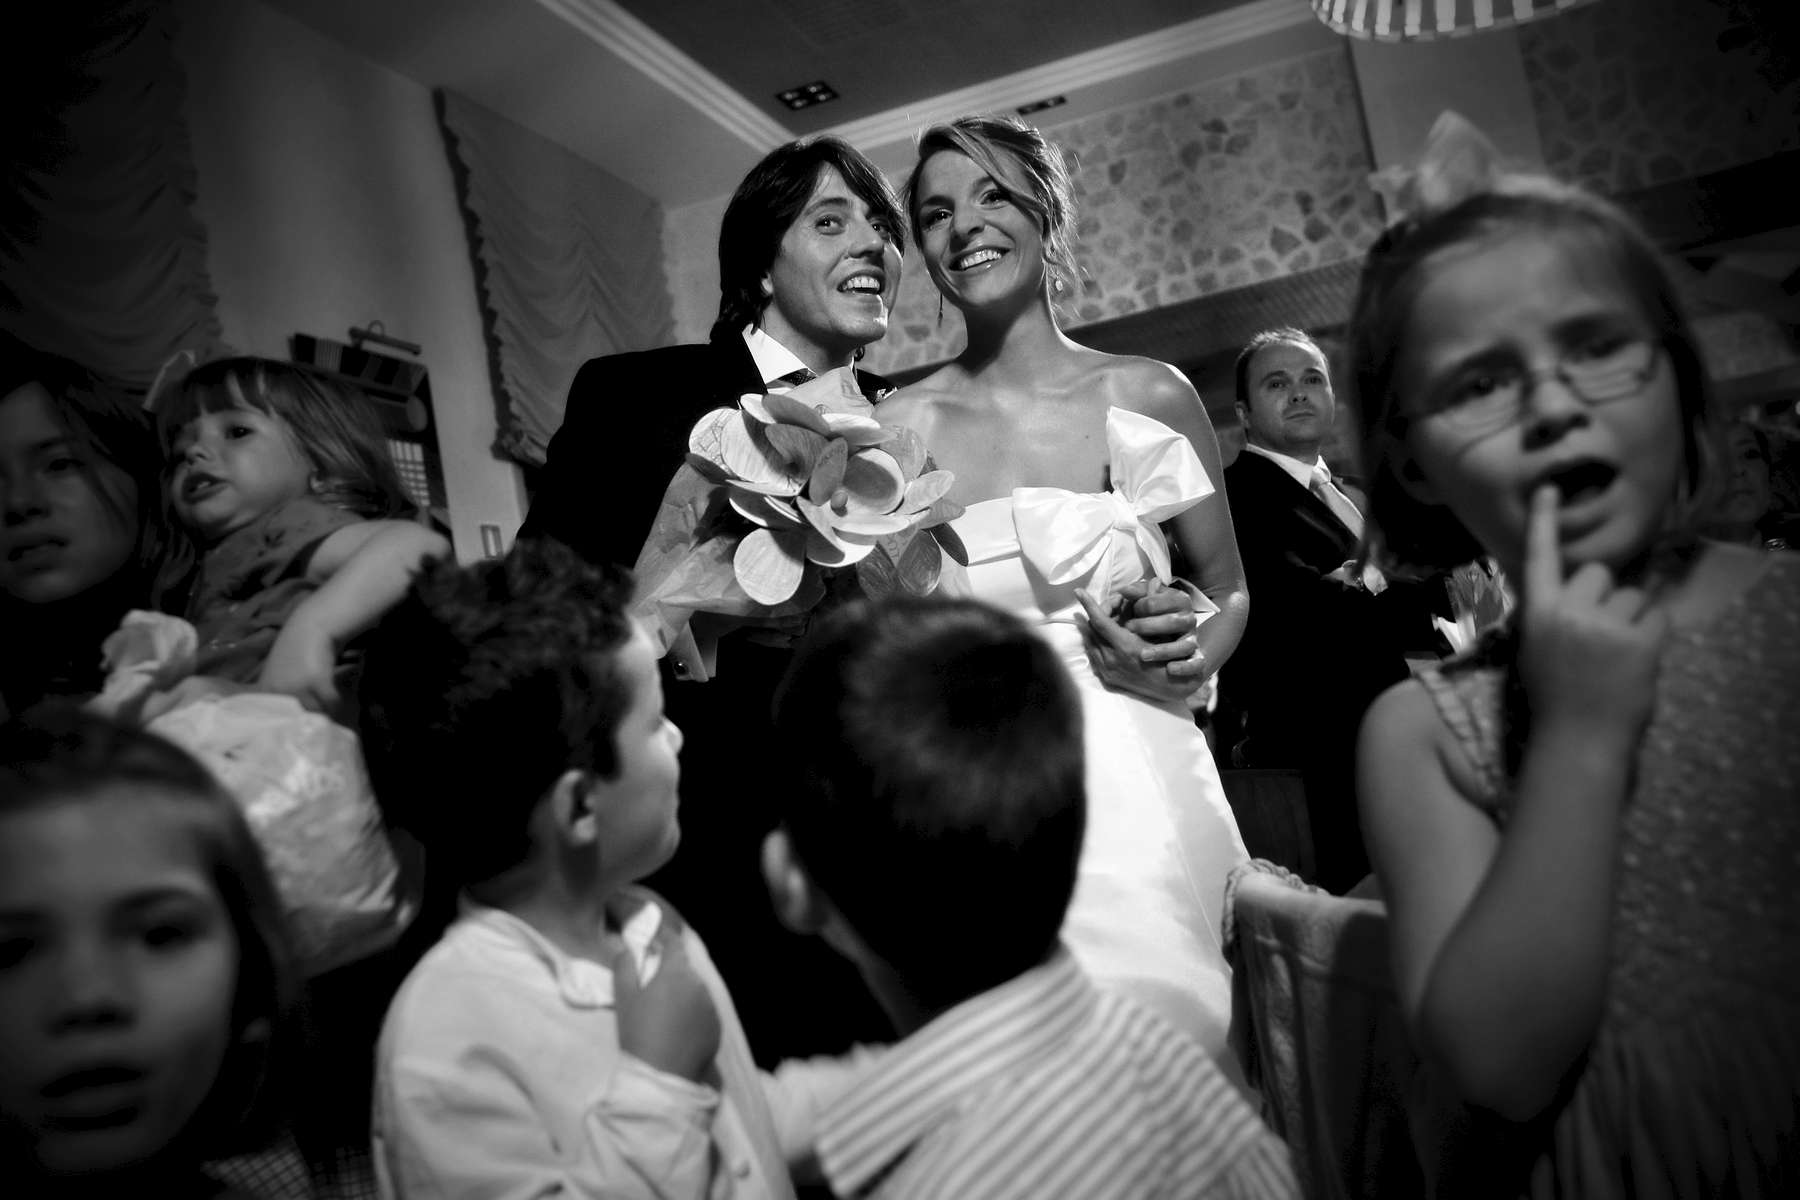 © albertoroldanweddings.com2014